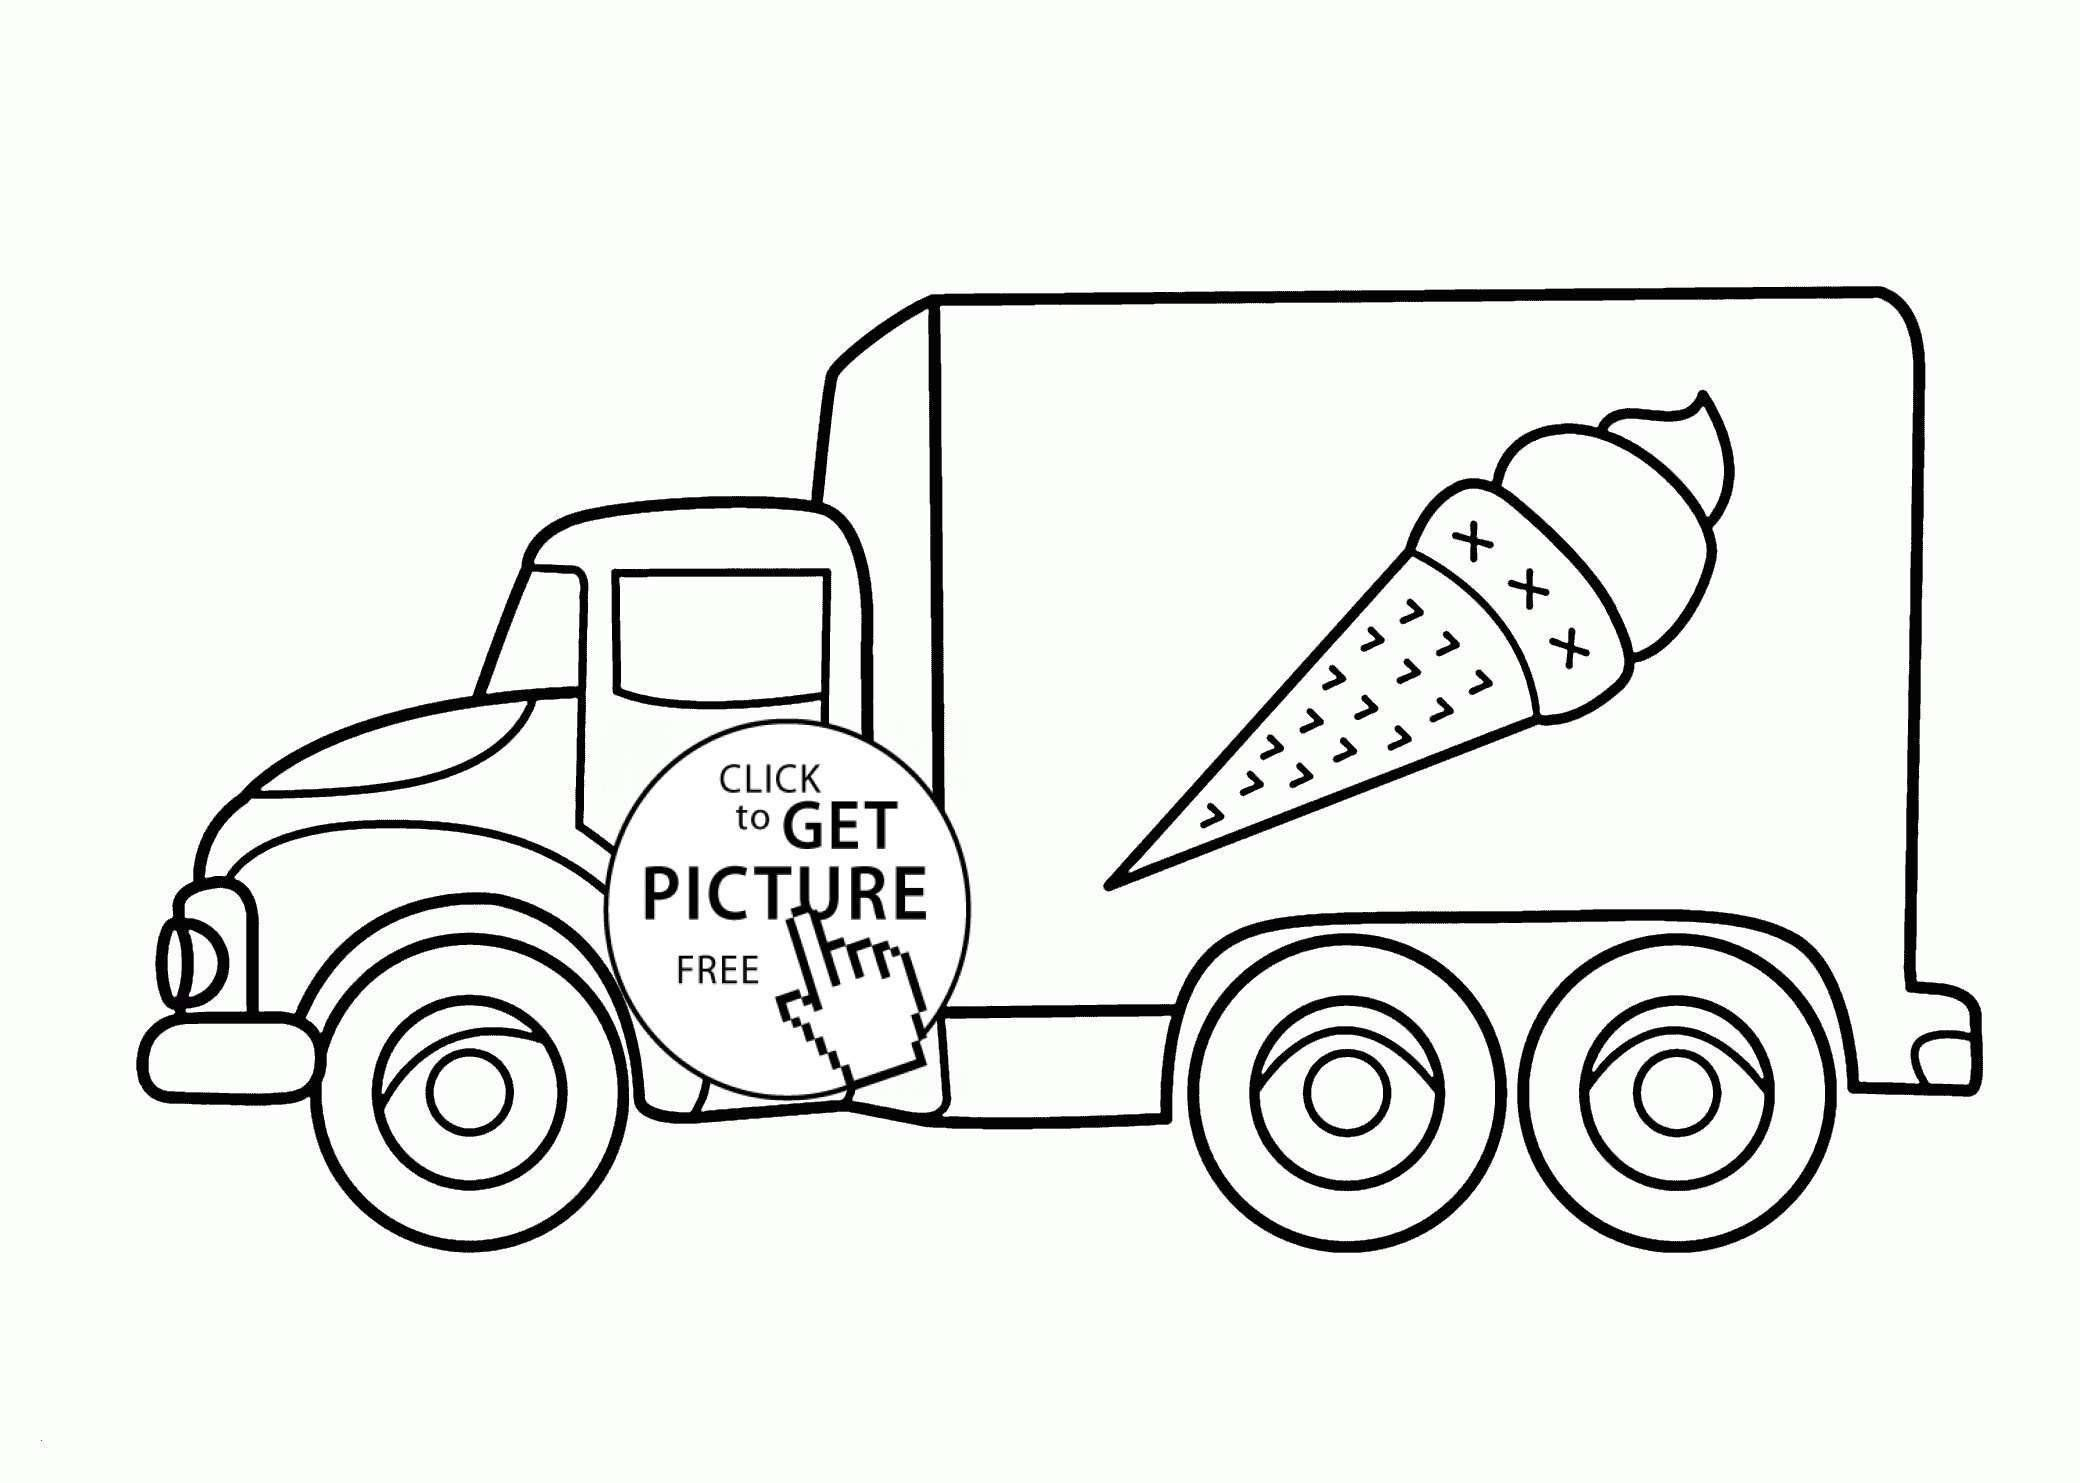 30 New Fire Truck Coloring Page In 2020 With Images Monster